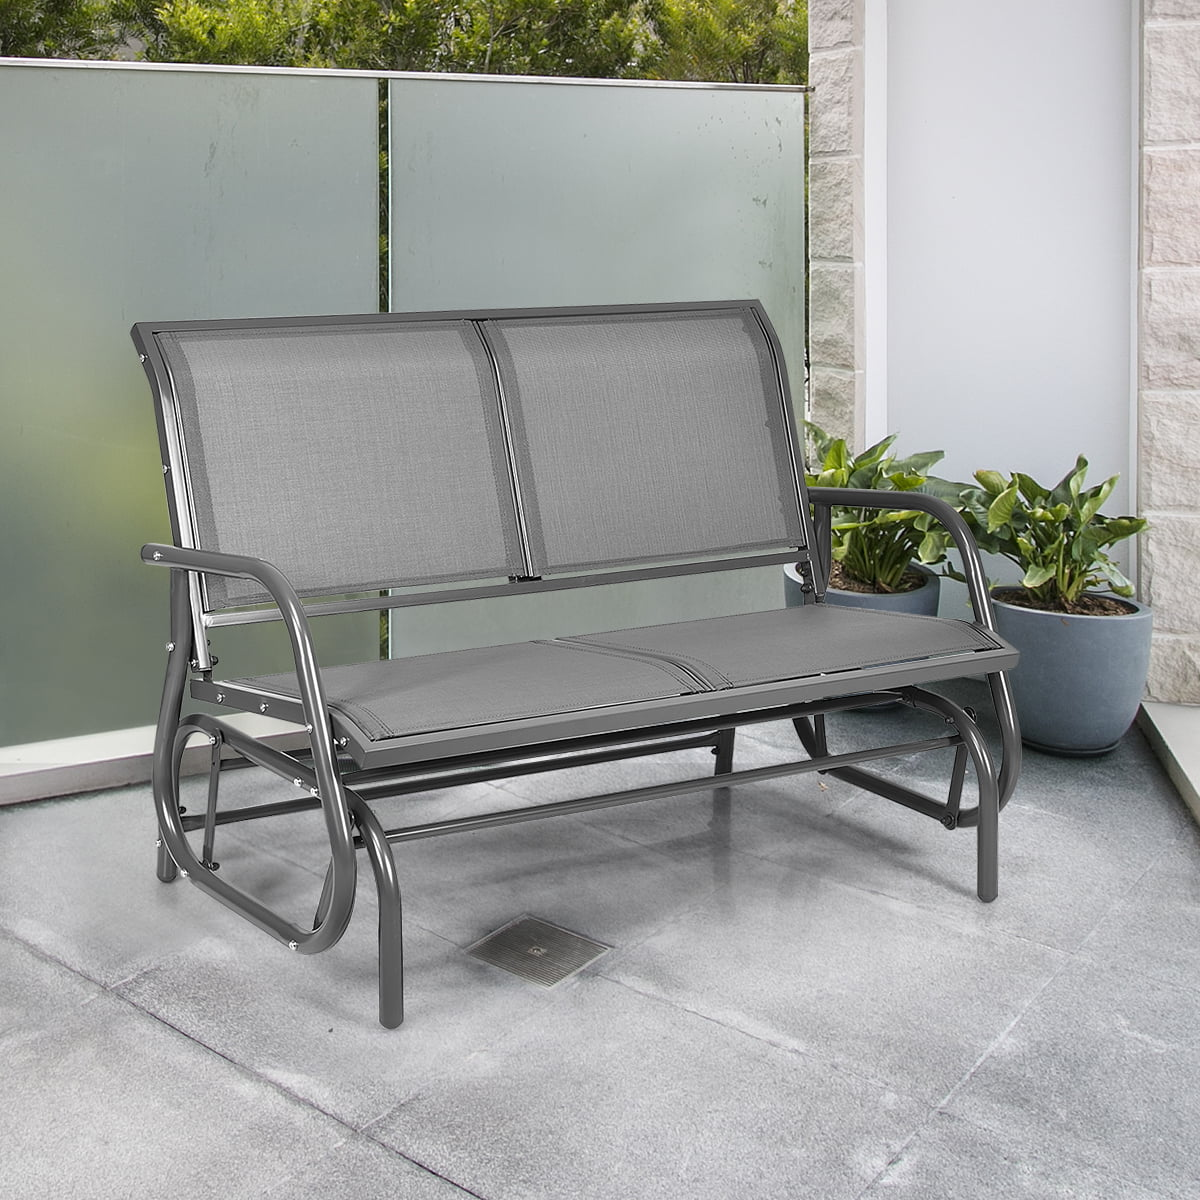 48 outdoor patio glider bench loveseat chaise rocking chair gray